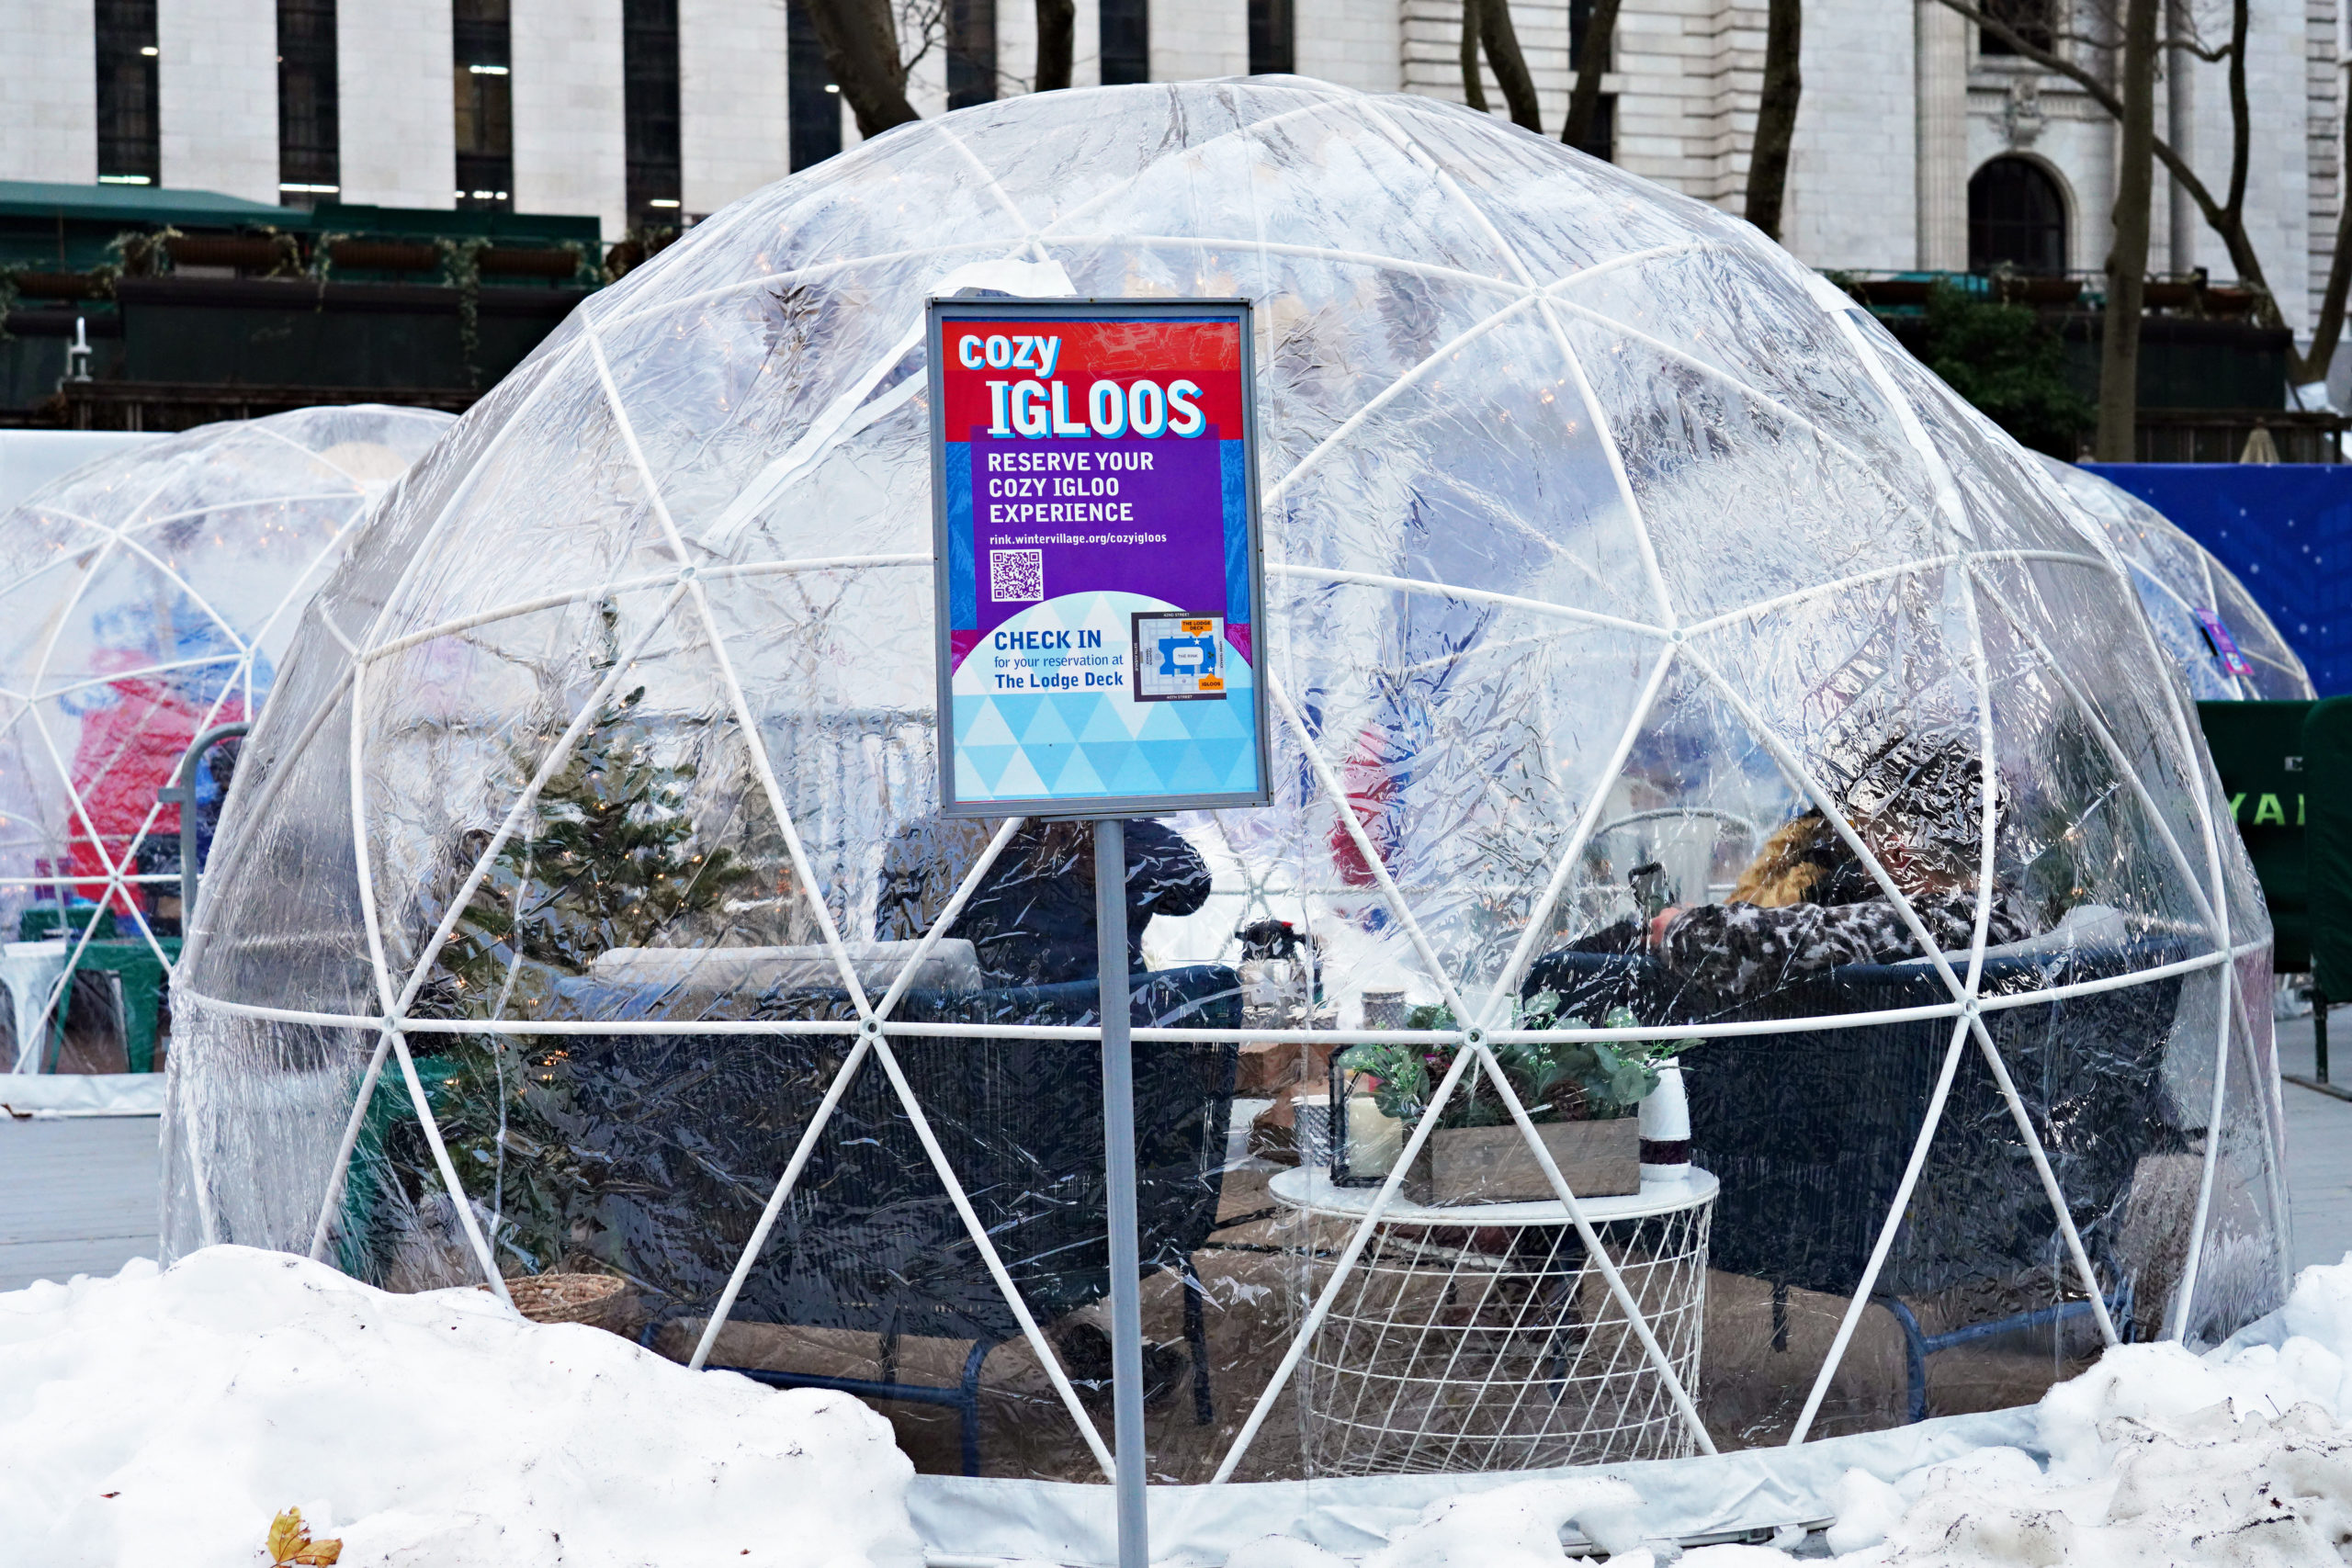 A view of igloo dining tents at Bank of America Winter Village in Bryant Park on December 23, 2020 in New York City. The pandemic continues to burden restaurants and bars as businesses struggle to thrive with evolving government restrictions and social distancing plans which impact keeping businesses open yet challenge profitability. (Photo by Cindy Ord/Getty Images)